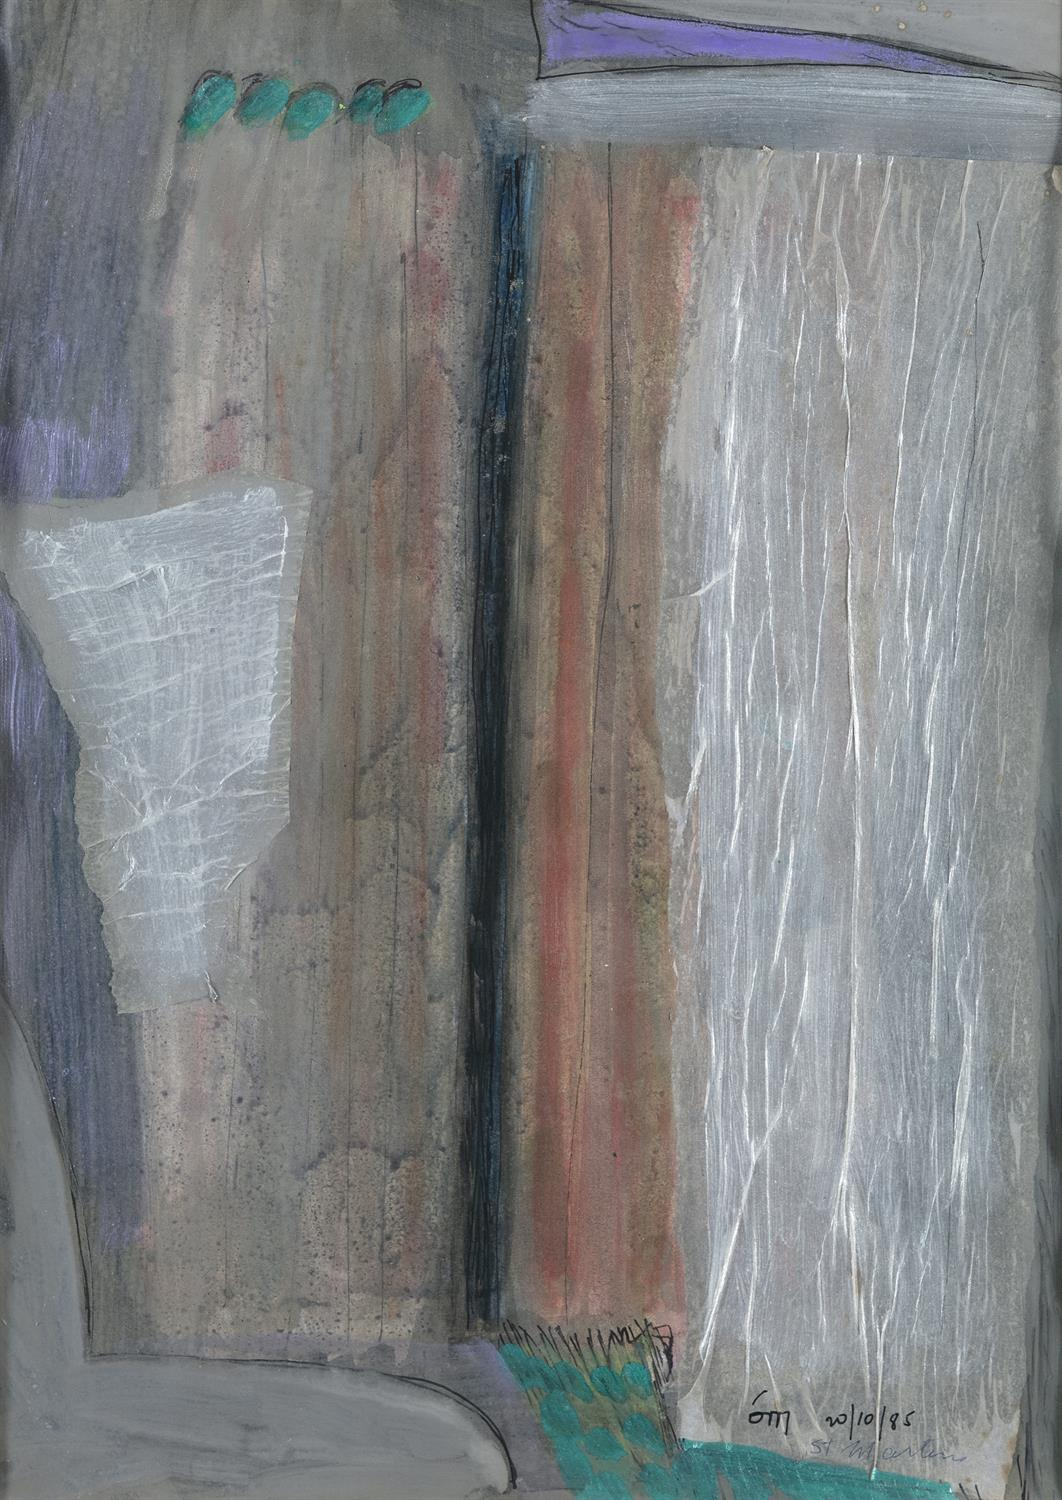 """Tony O'Malley HRHA (1913-2003) St. Martin Gouache and collage, 41.5 x 28.5cm (16¼ x 11¼"""") Signed"""